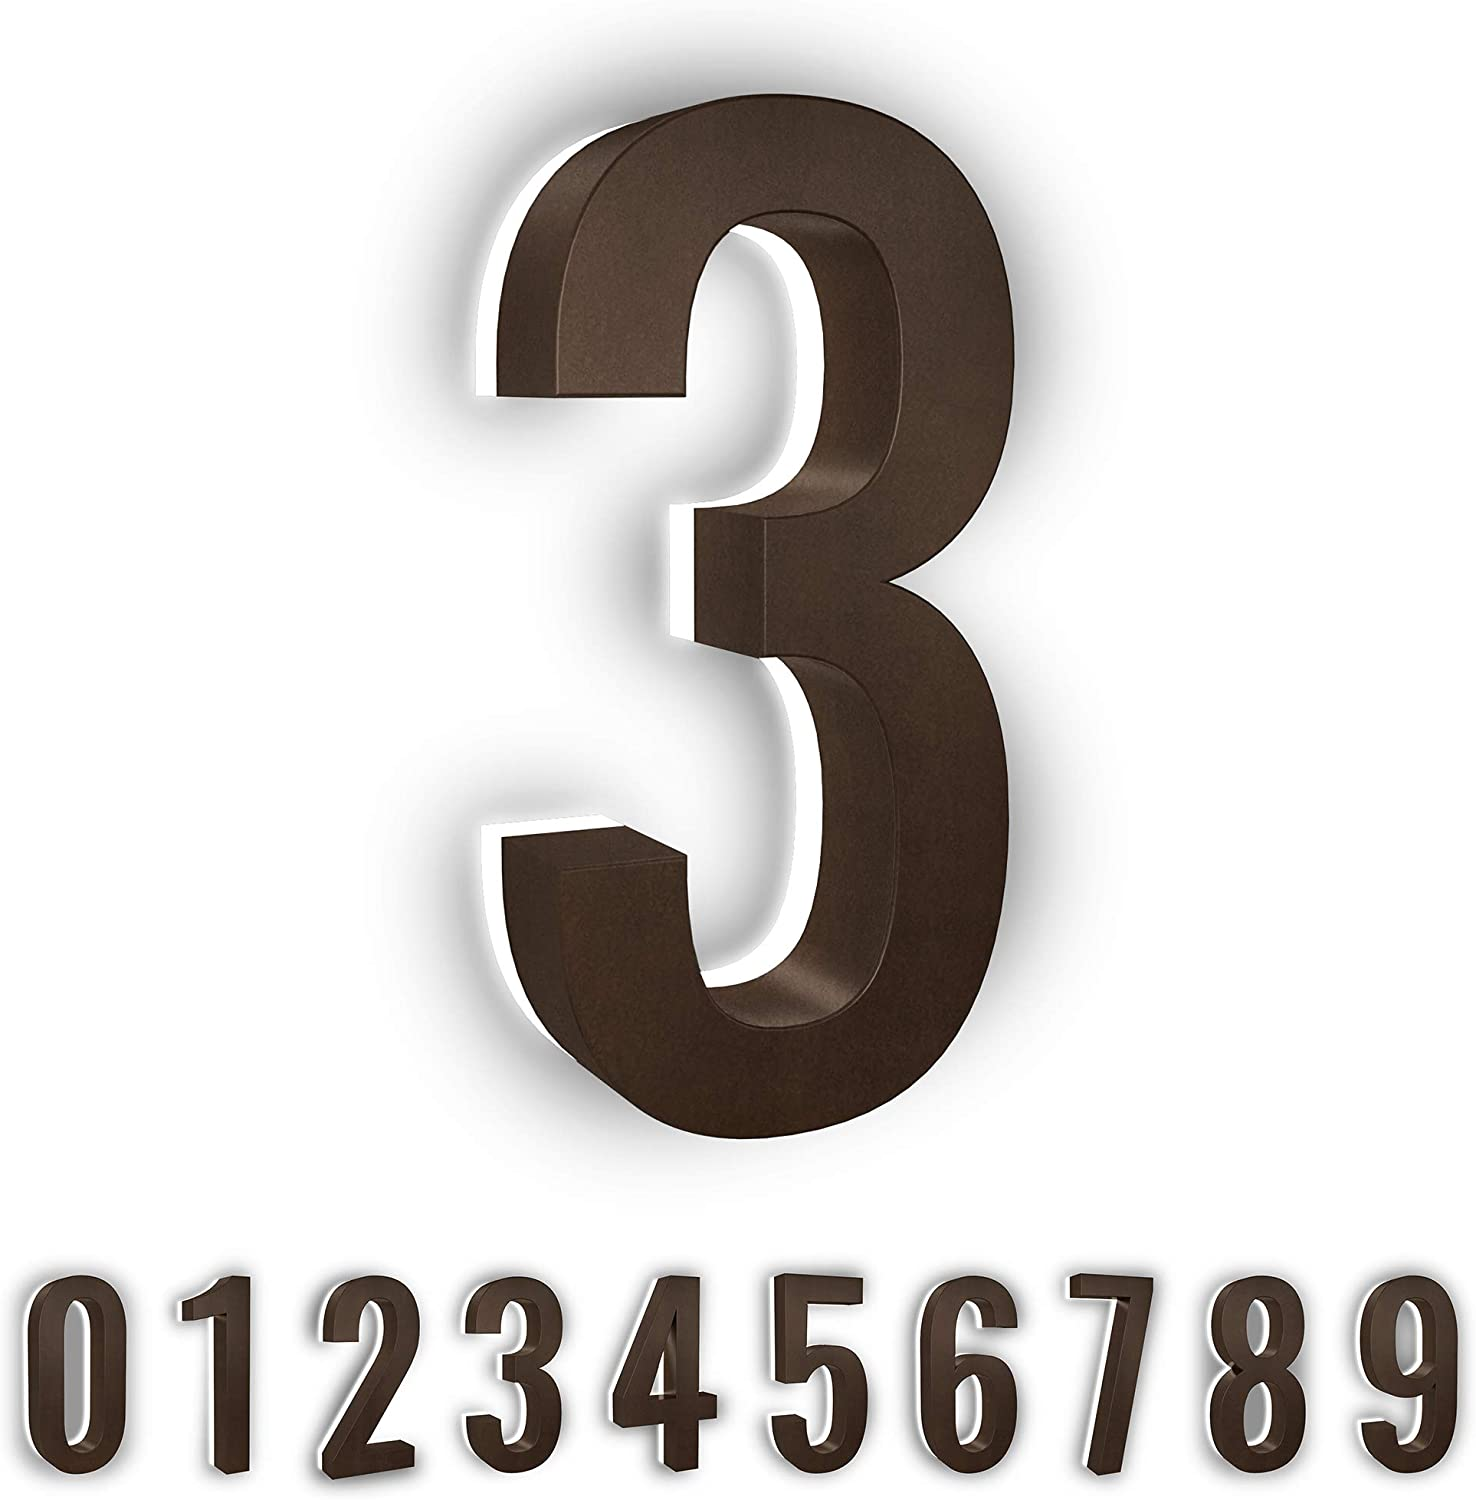 7-Inch Low-Voltage Backlit LED Address Numbers by LN LUMANUMBERS, Durable Brushed Steel Lighted House Numbers, Weather-Proof, Modern Illuminated Floating Numbers (Bronze, 3)